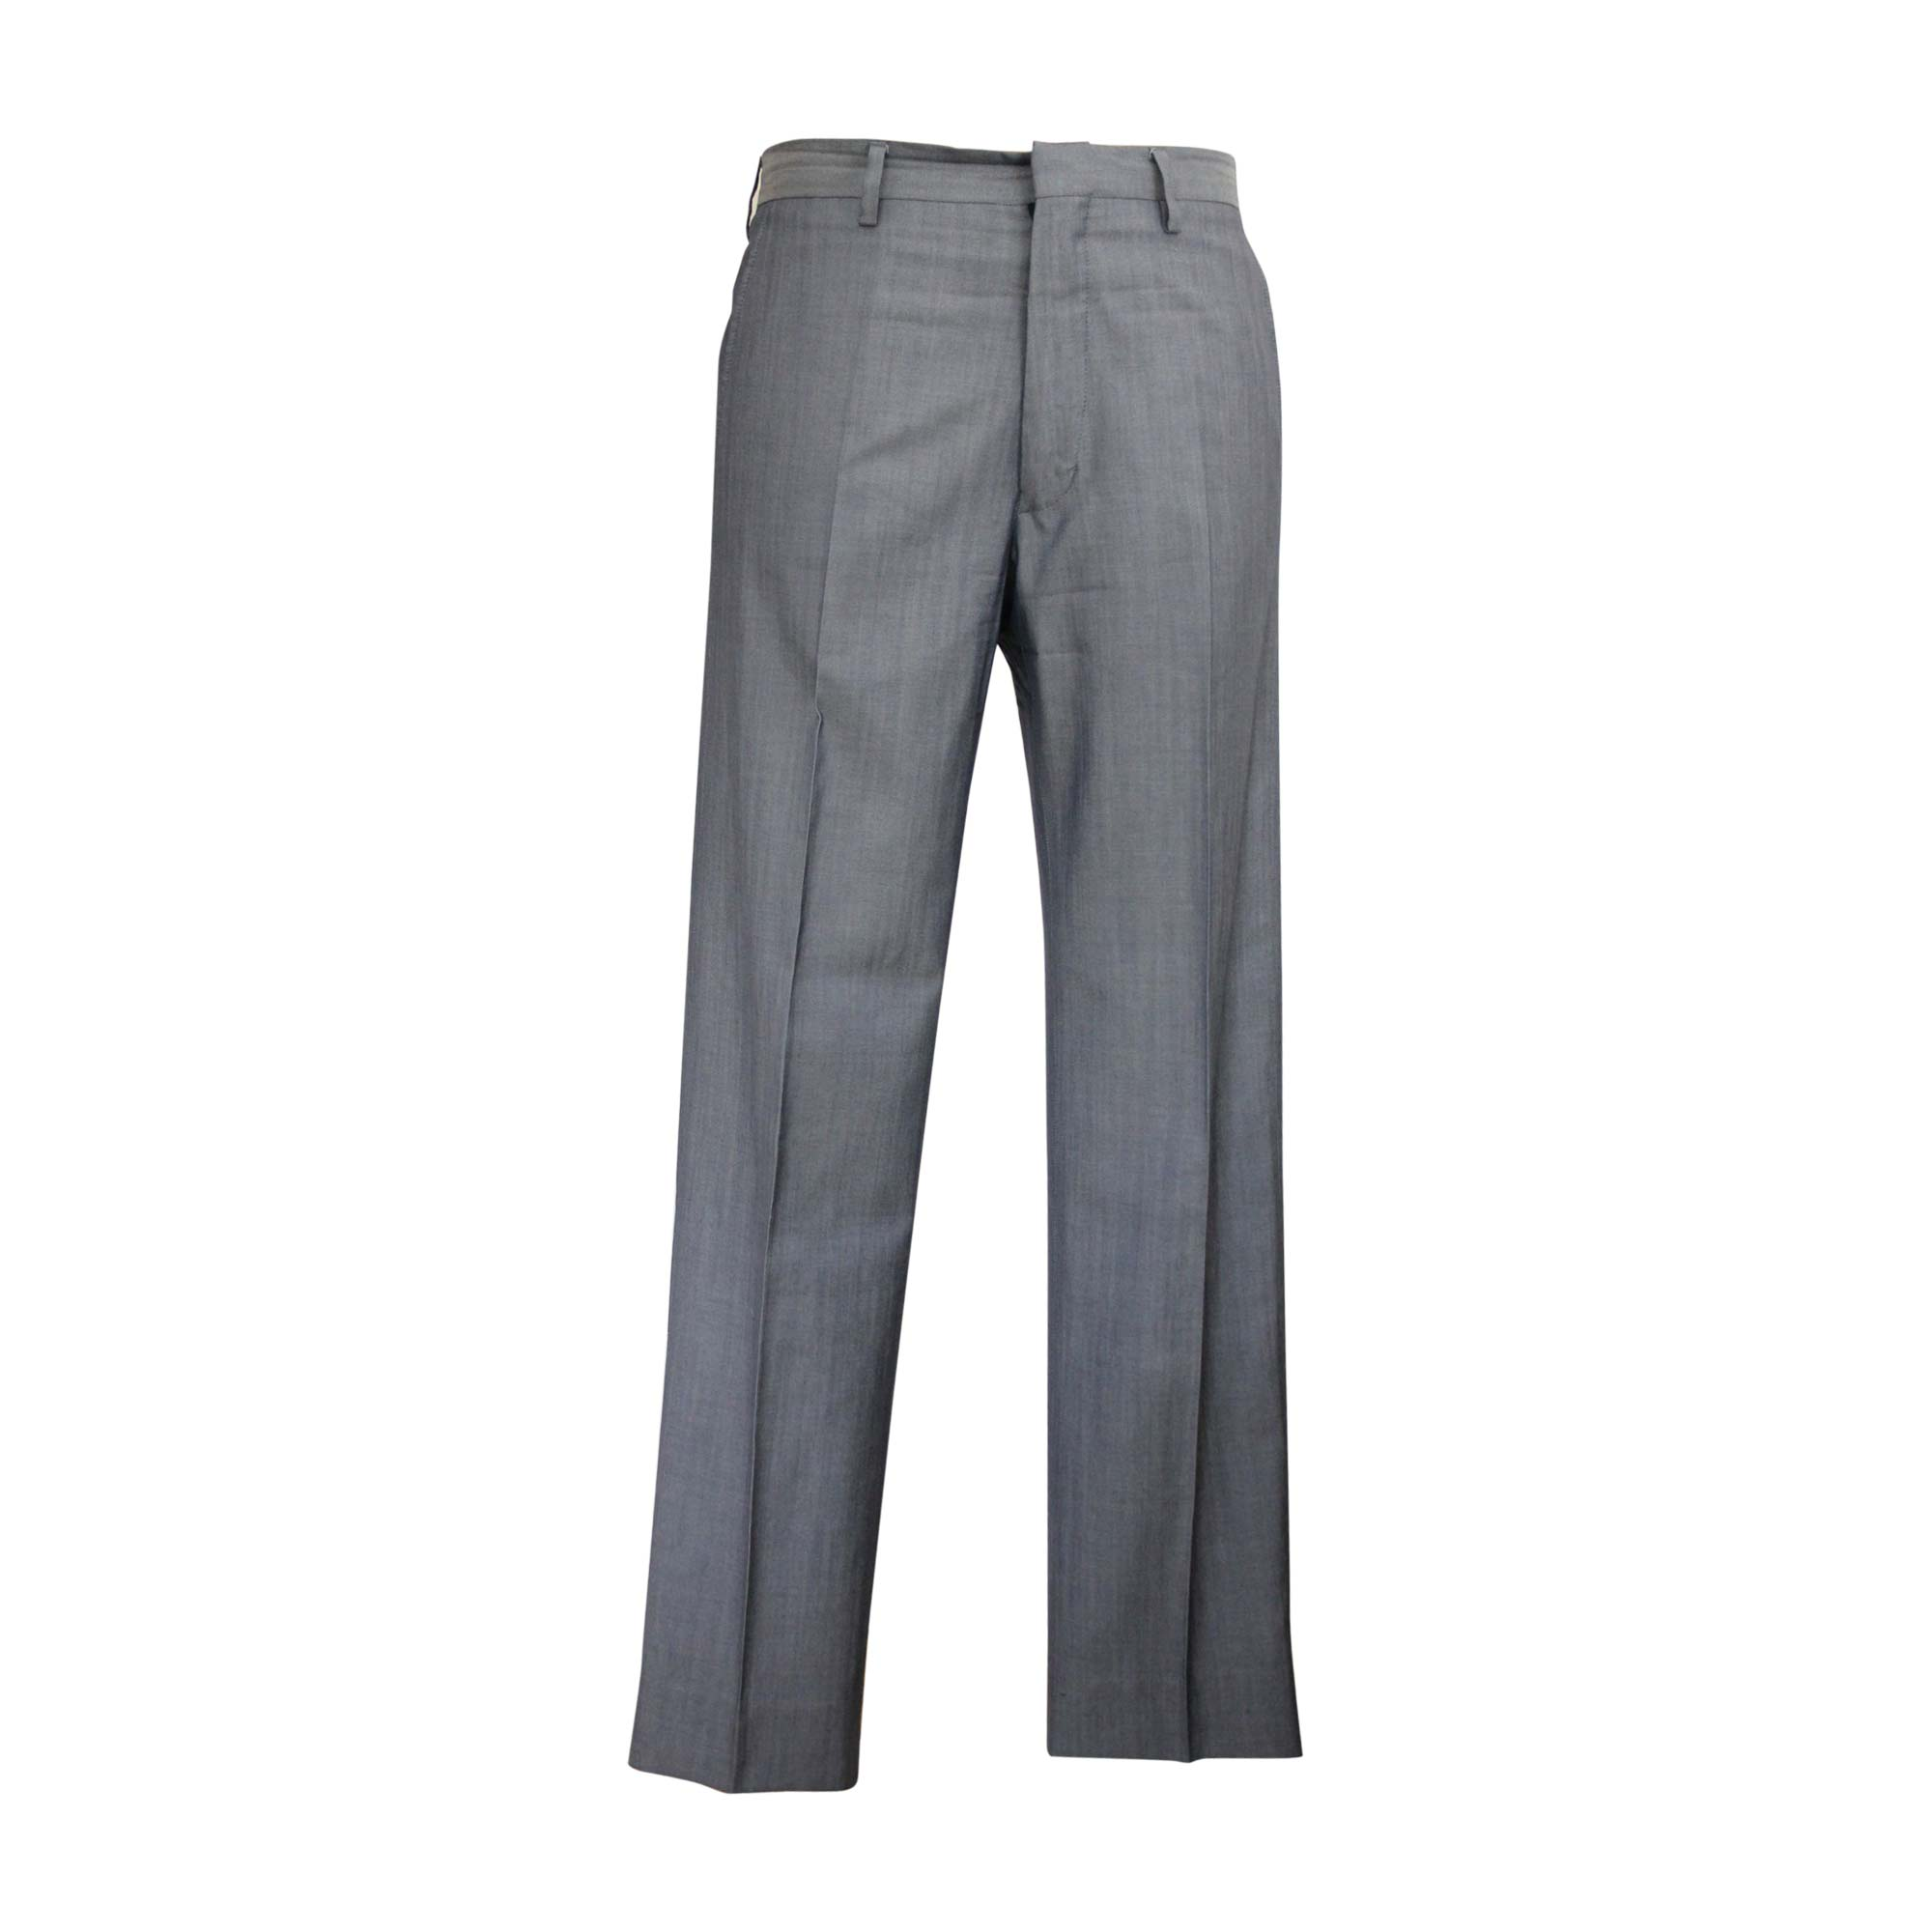 Straight Leg Pants MAISON MARTIN MARGIELA Gray, charcoal